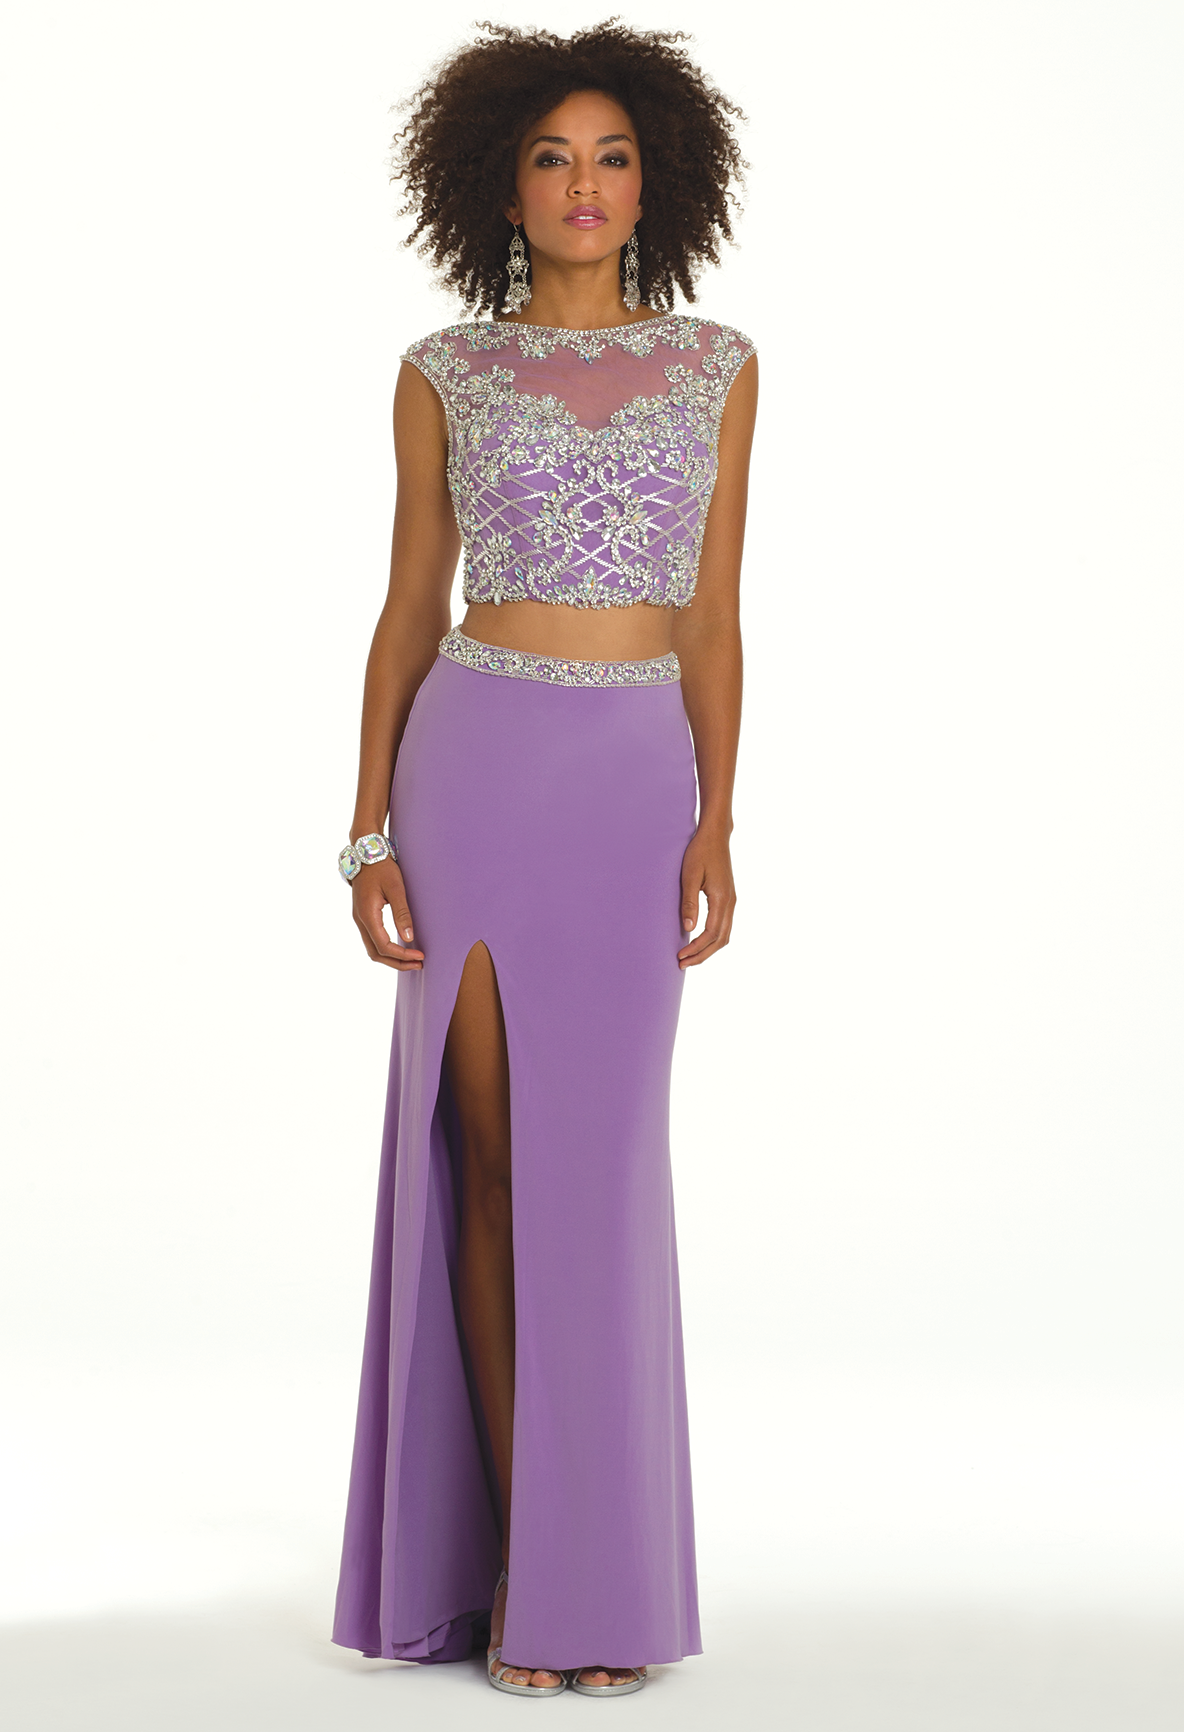 get started on the prom shopping and buy your hot dress | Camille La Vie